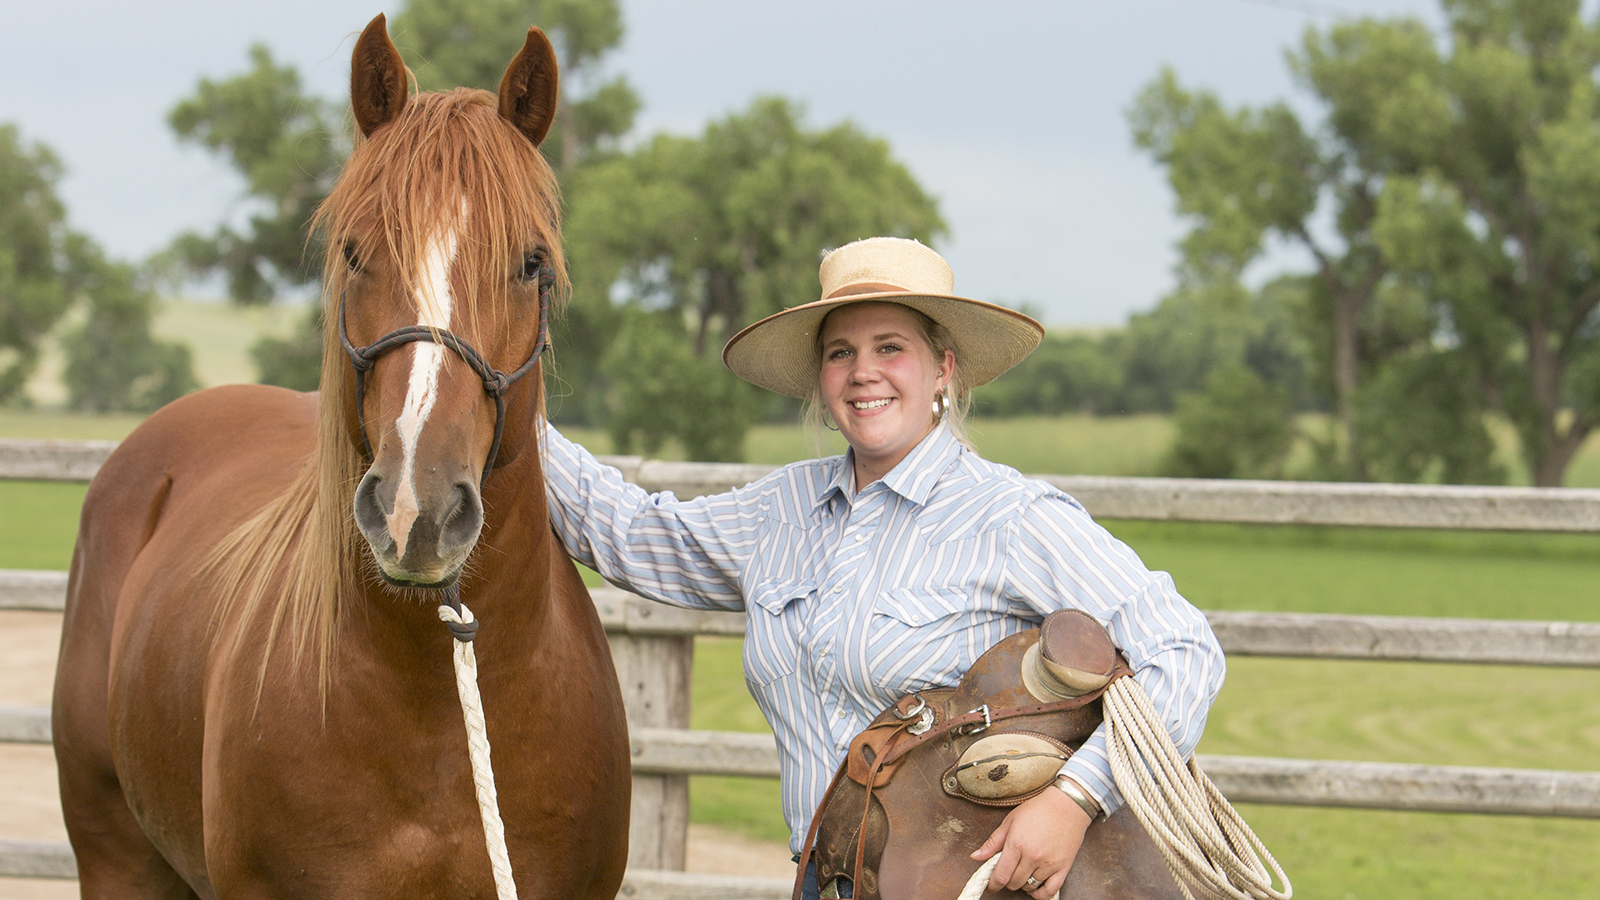 Jessica Casteel lives on a ranch in South Dakota